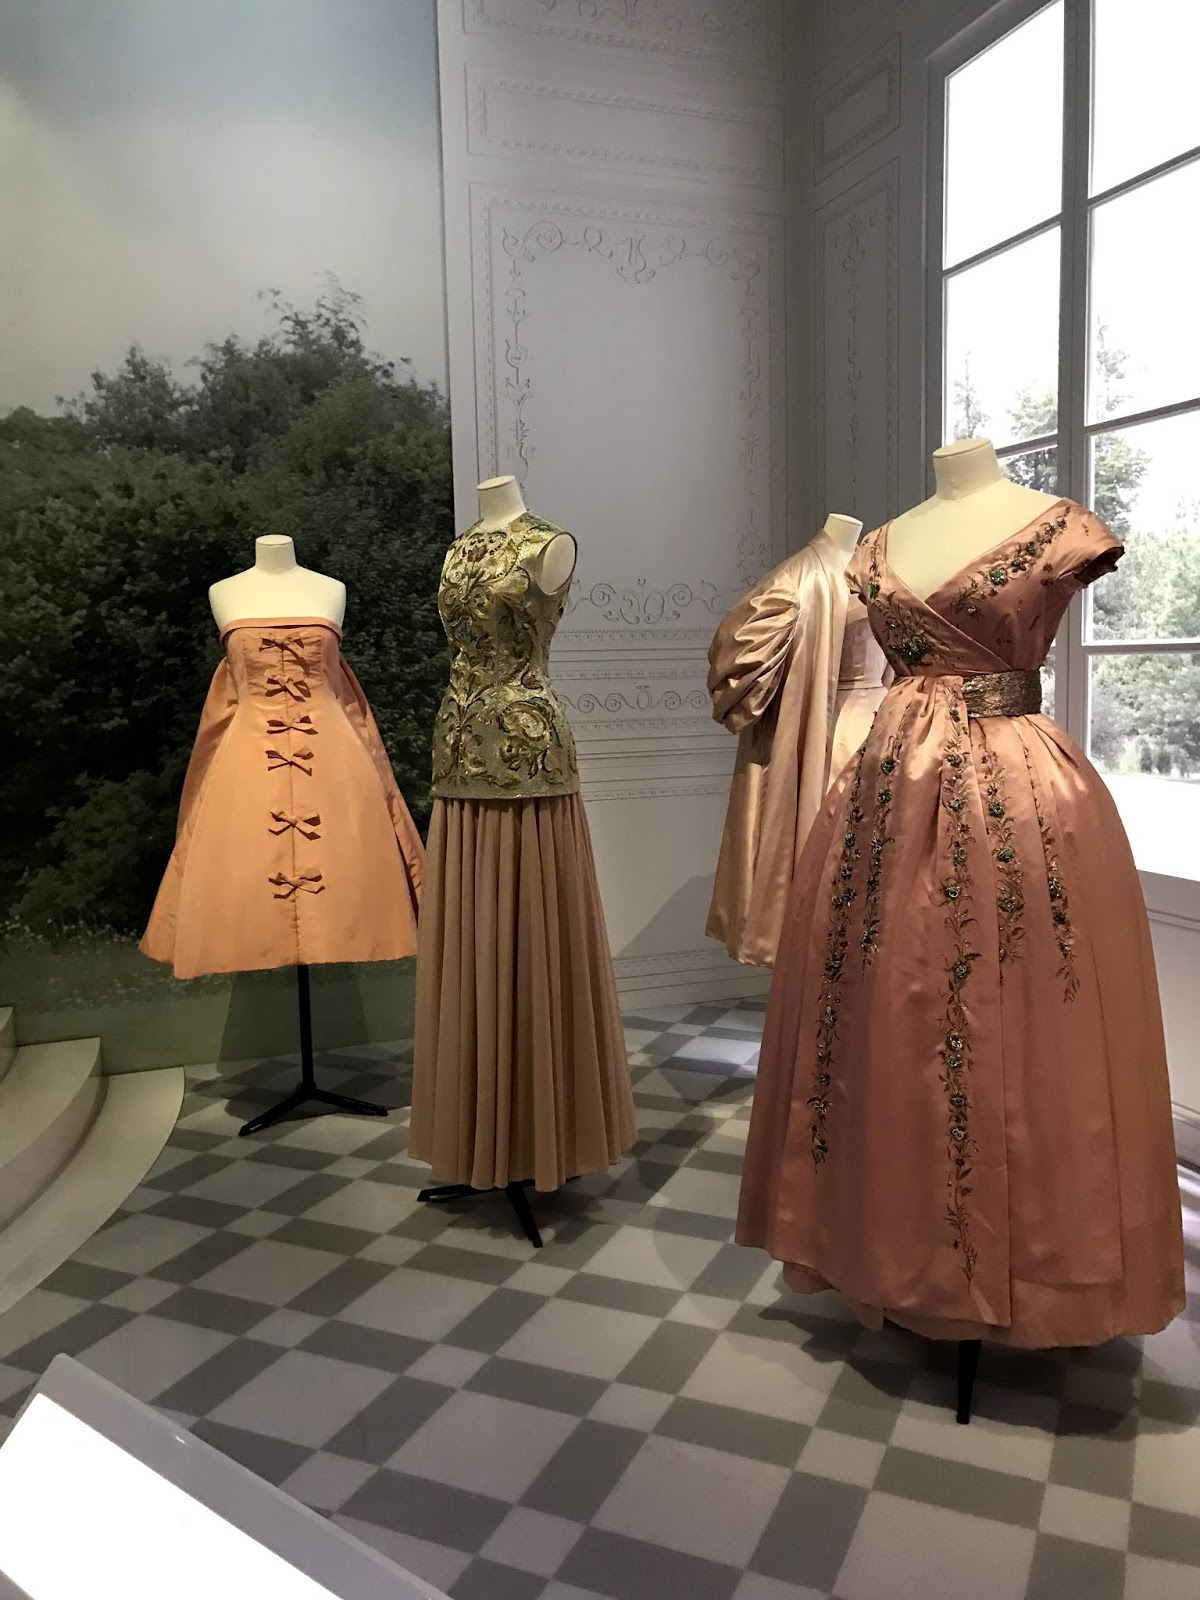 Christian Dior Exhibition at the V&A